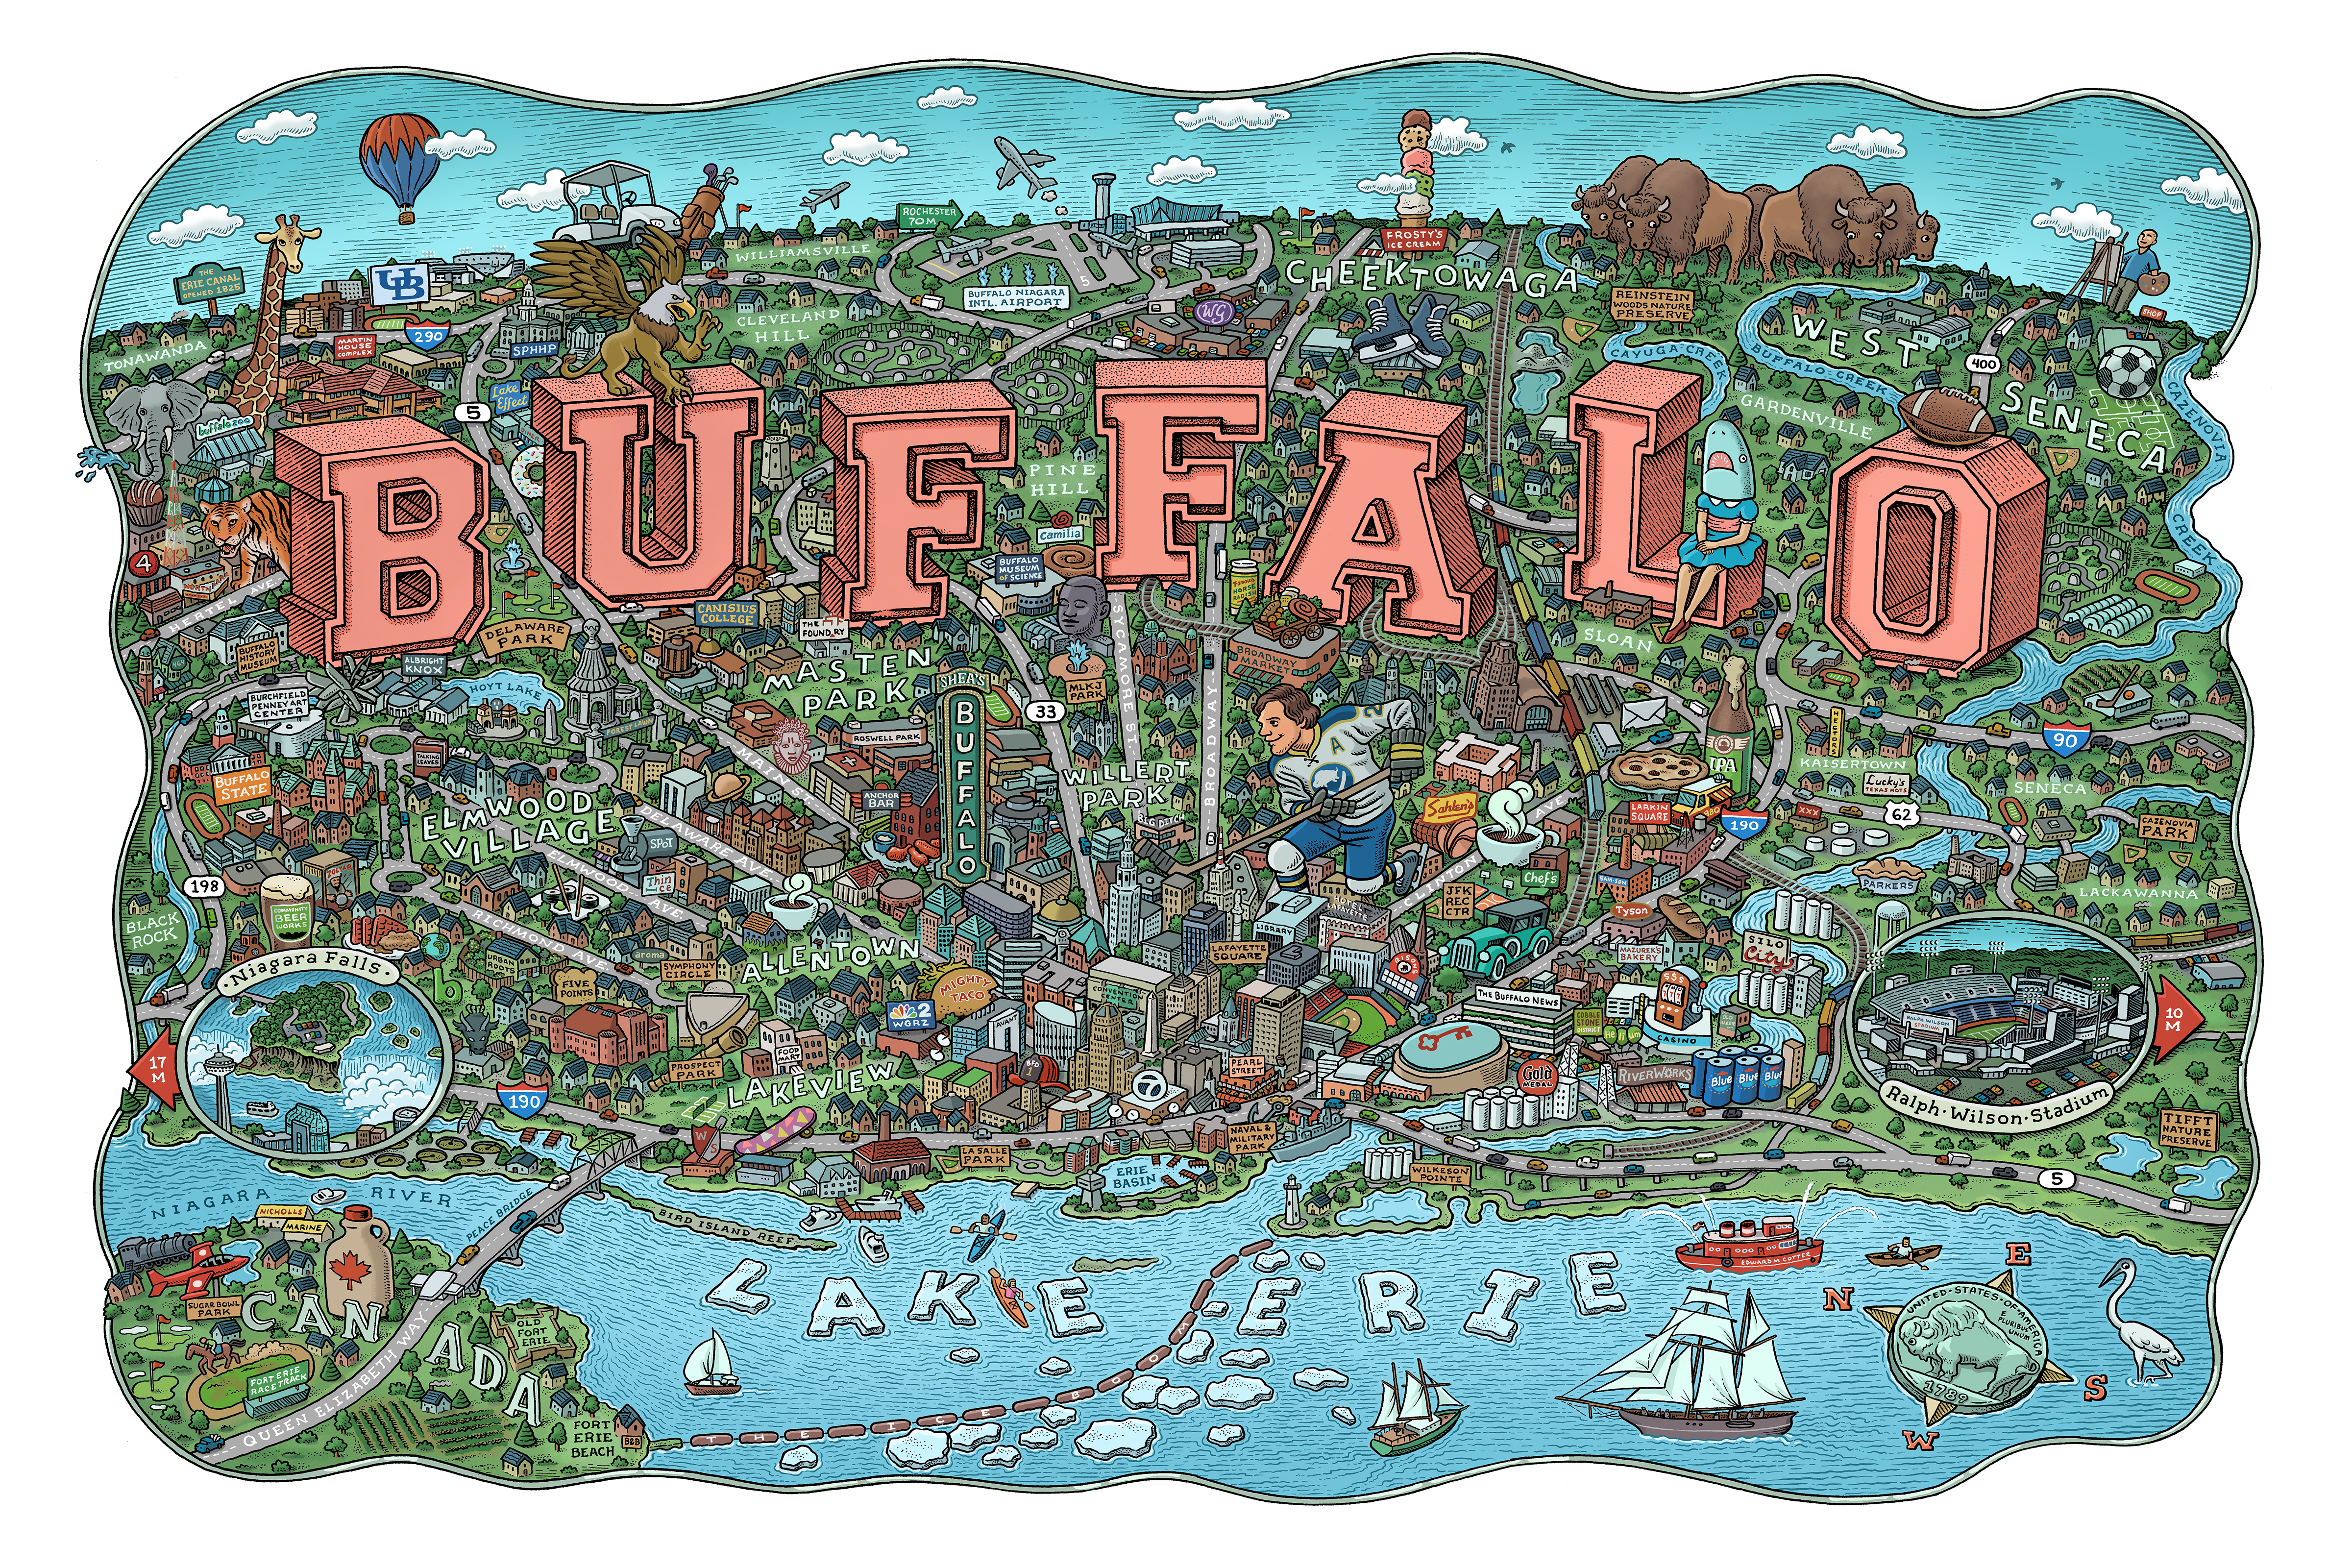 Pittsburgh-based illustrator Mario Zucca spent months creating an illustrated map of the Greater Buffalo region. It features dozens of community institutions, personalities and landmarks.